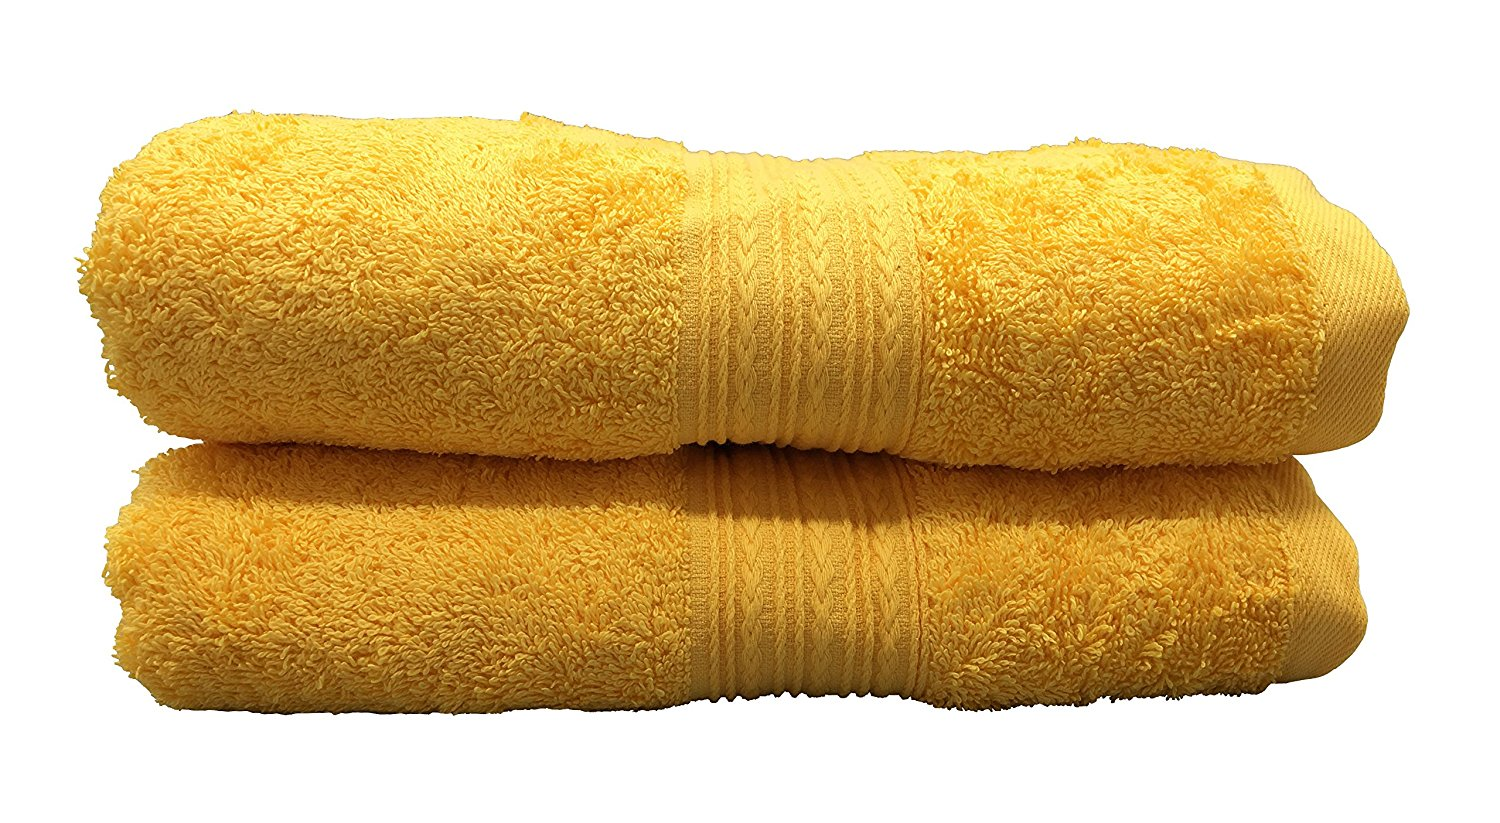 Goza Towels Cotton Bath Towels (2 Pack, 28 by 56 inches) Gold Yellow by